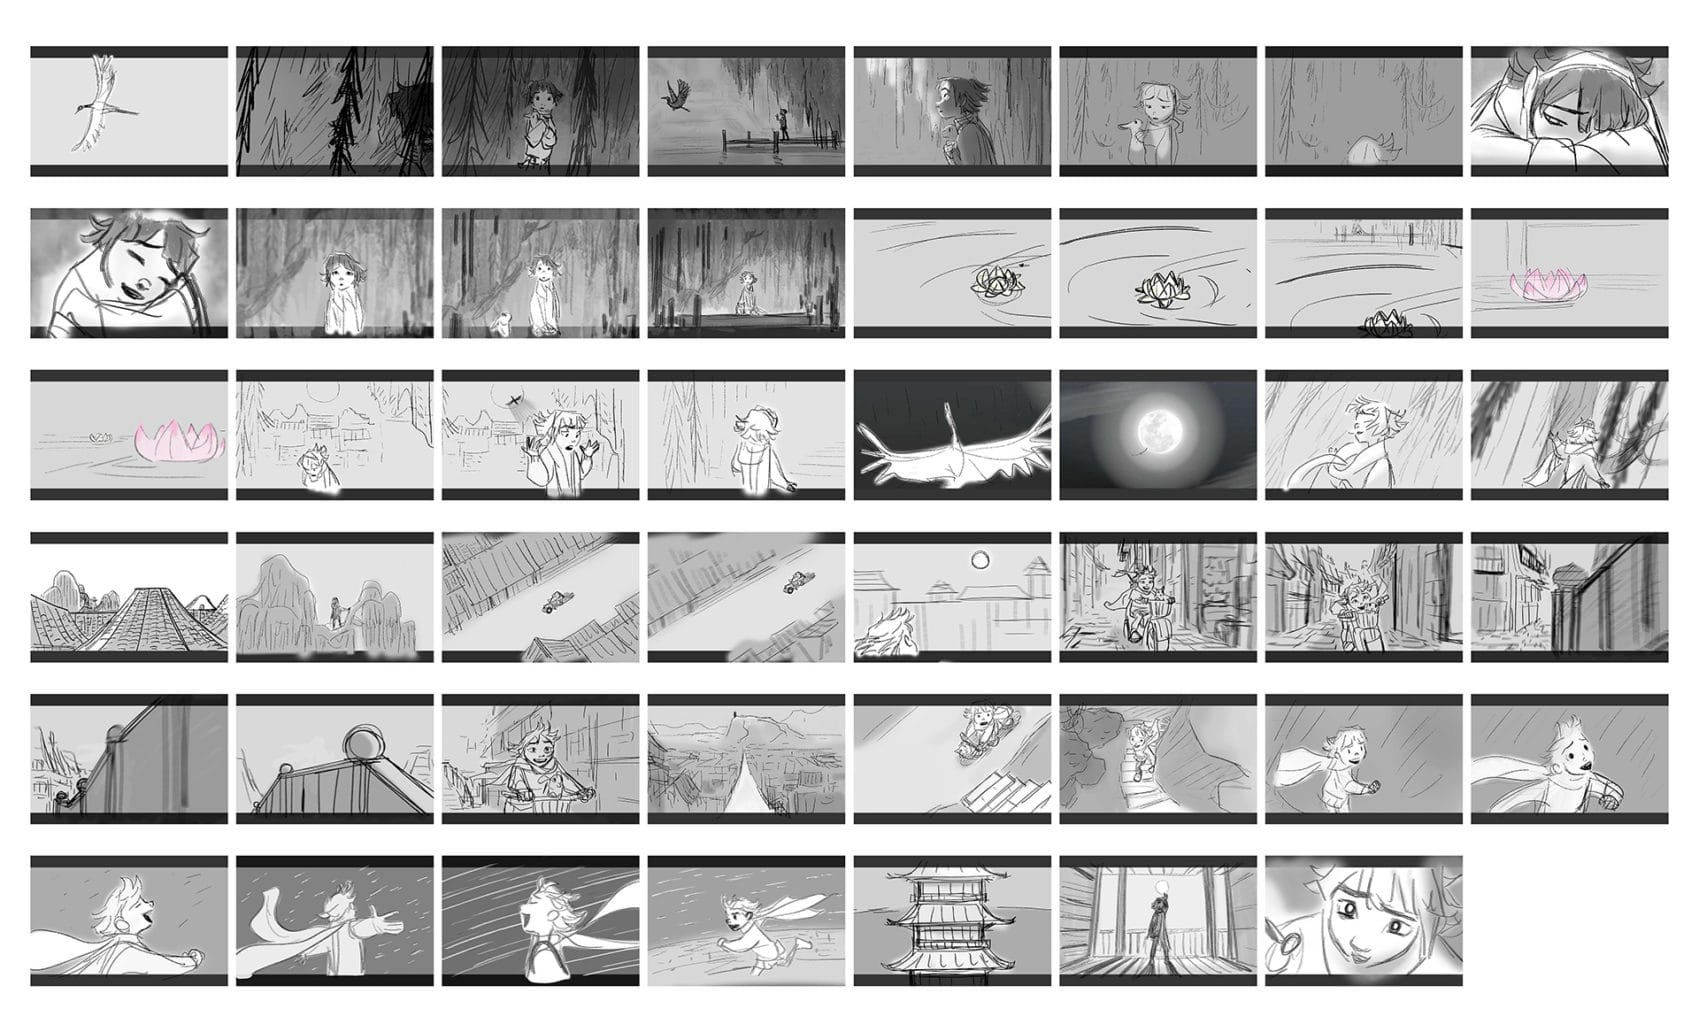 storyboard sequence from Over the Moon film